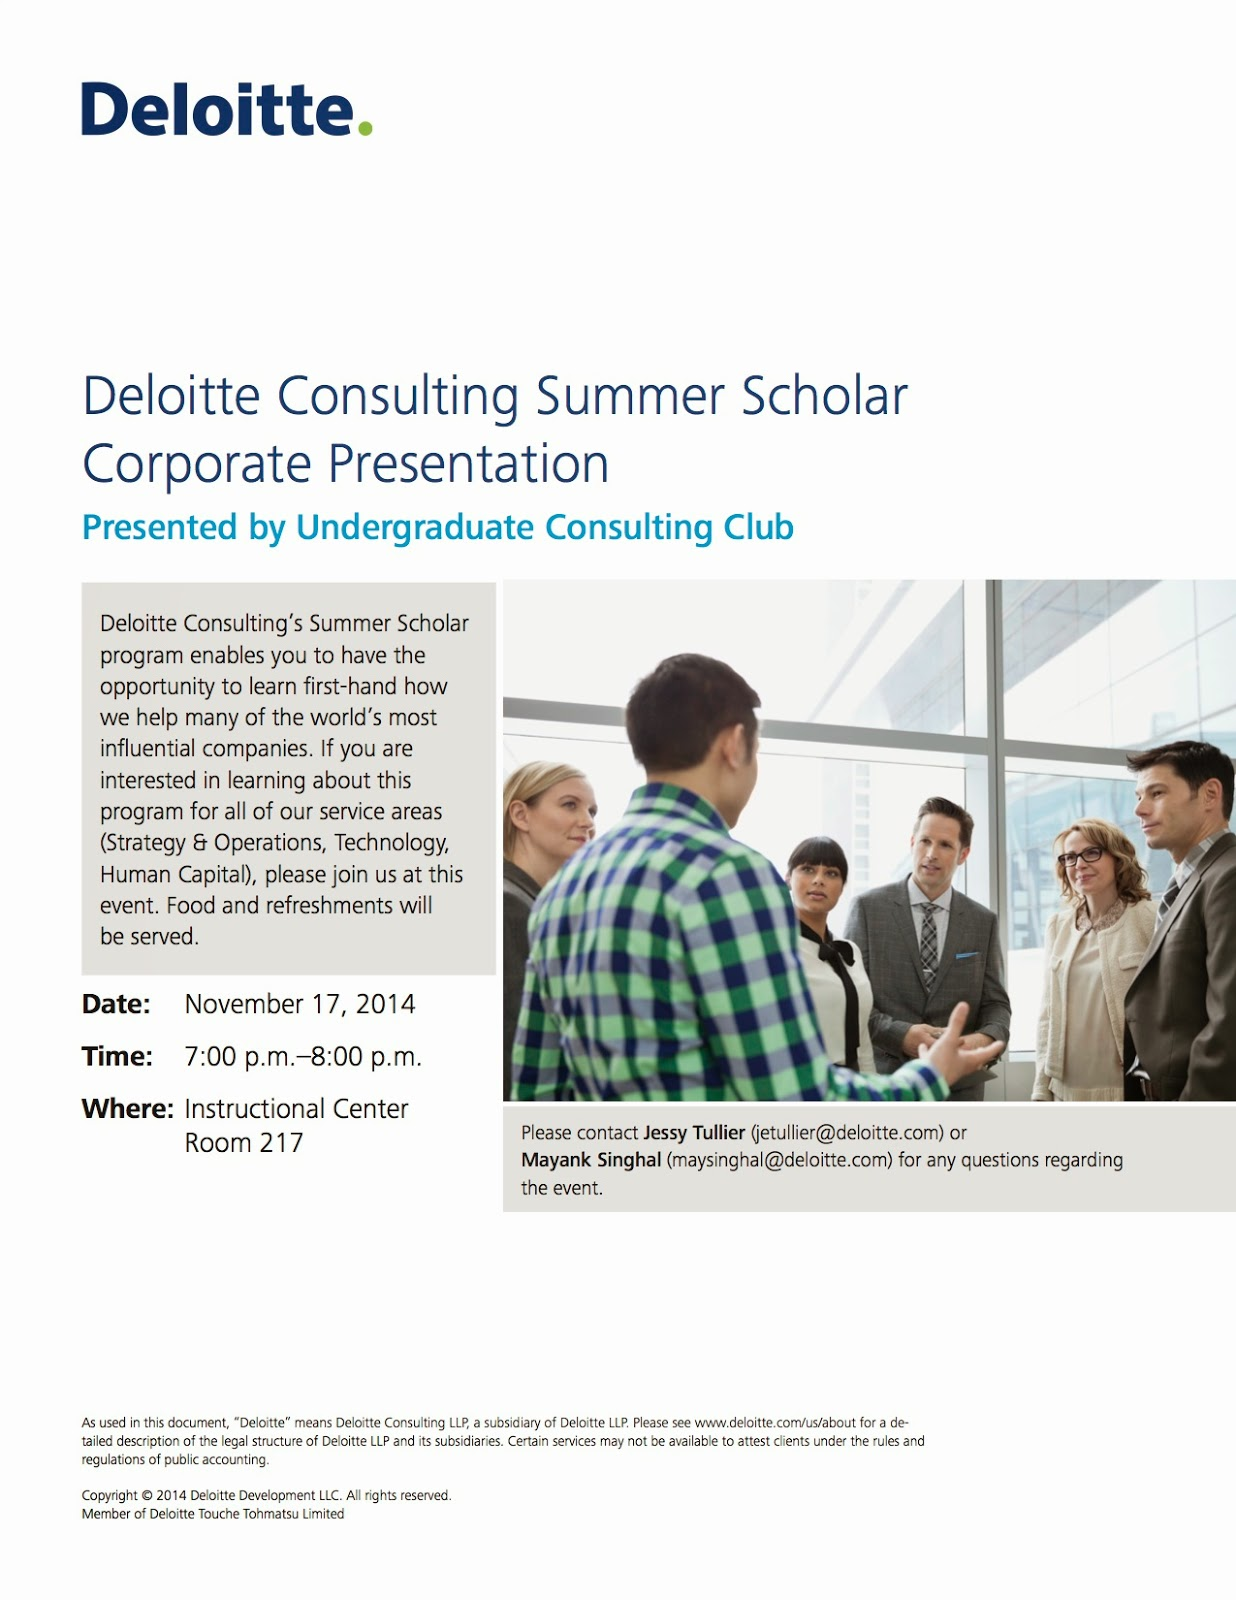 Gt Hsoc Student Blog Deloitte Consulting Summer Scholar Corporate